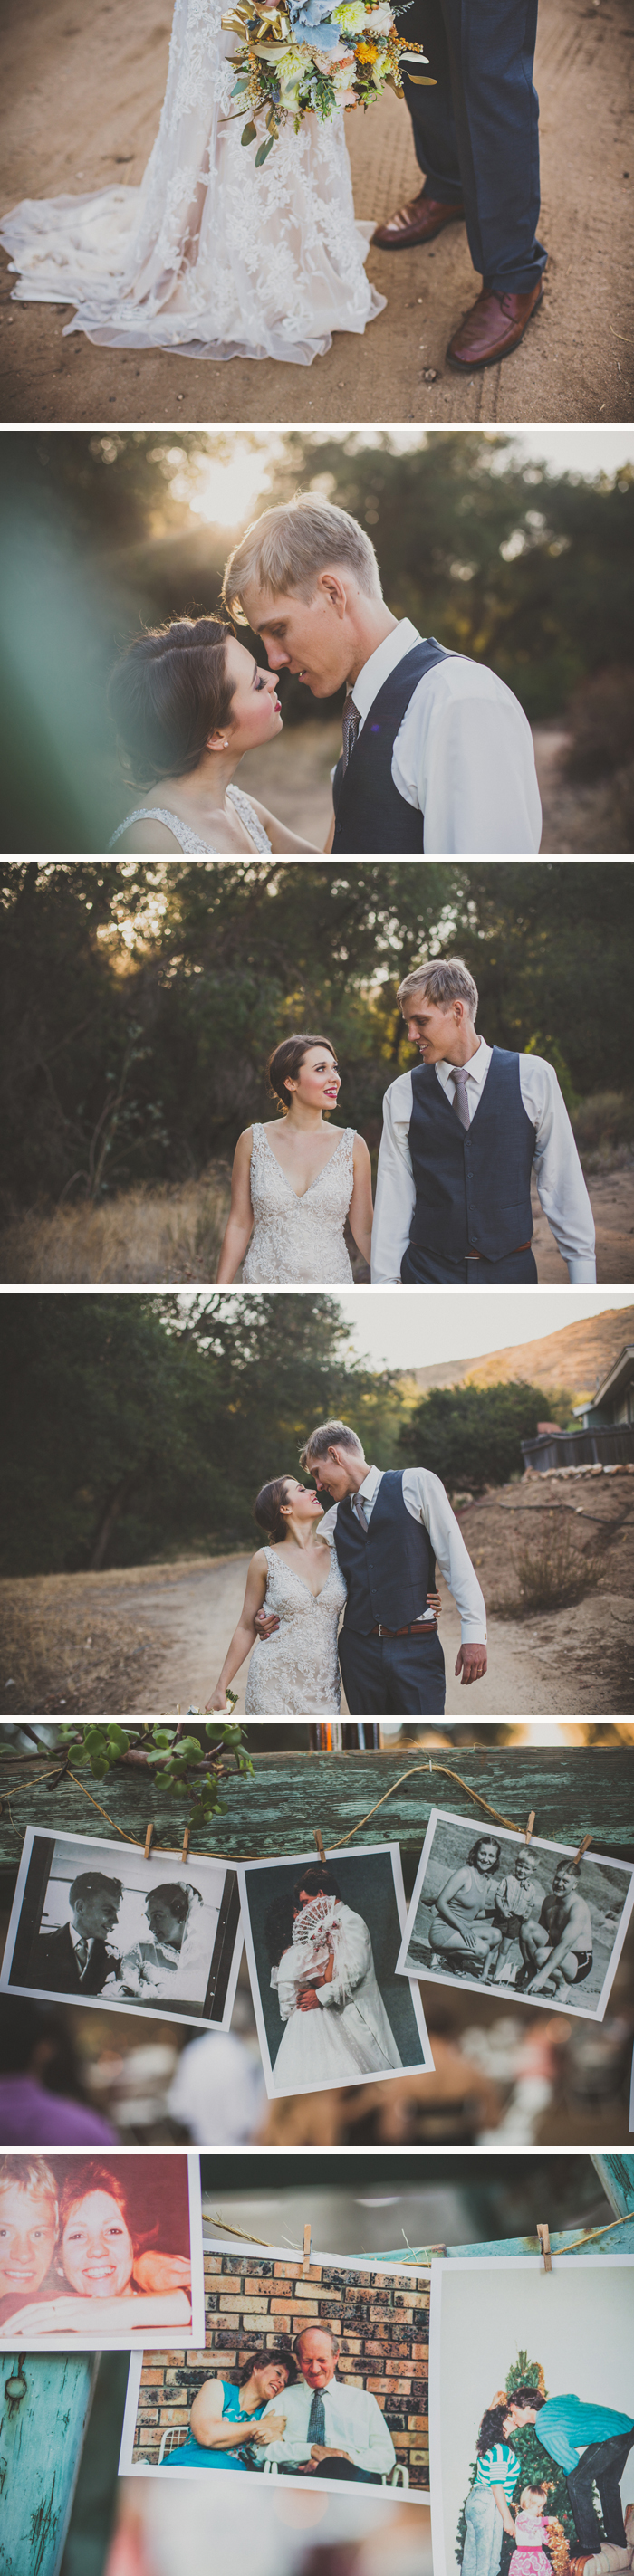 Wedding Photos In Ramona At Hidden Oaks